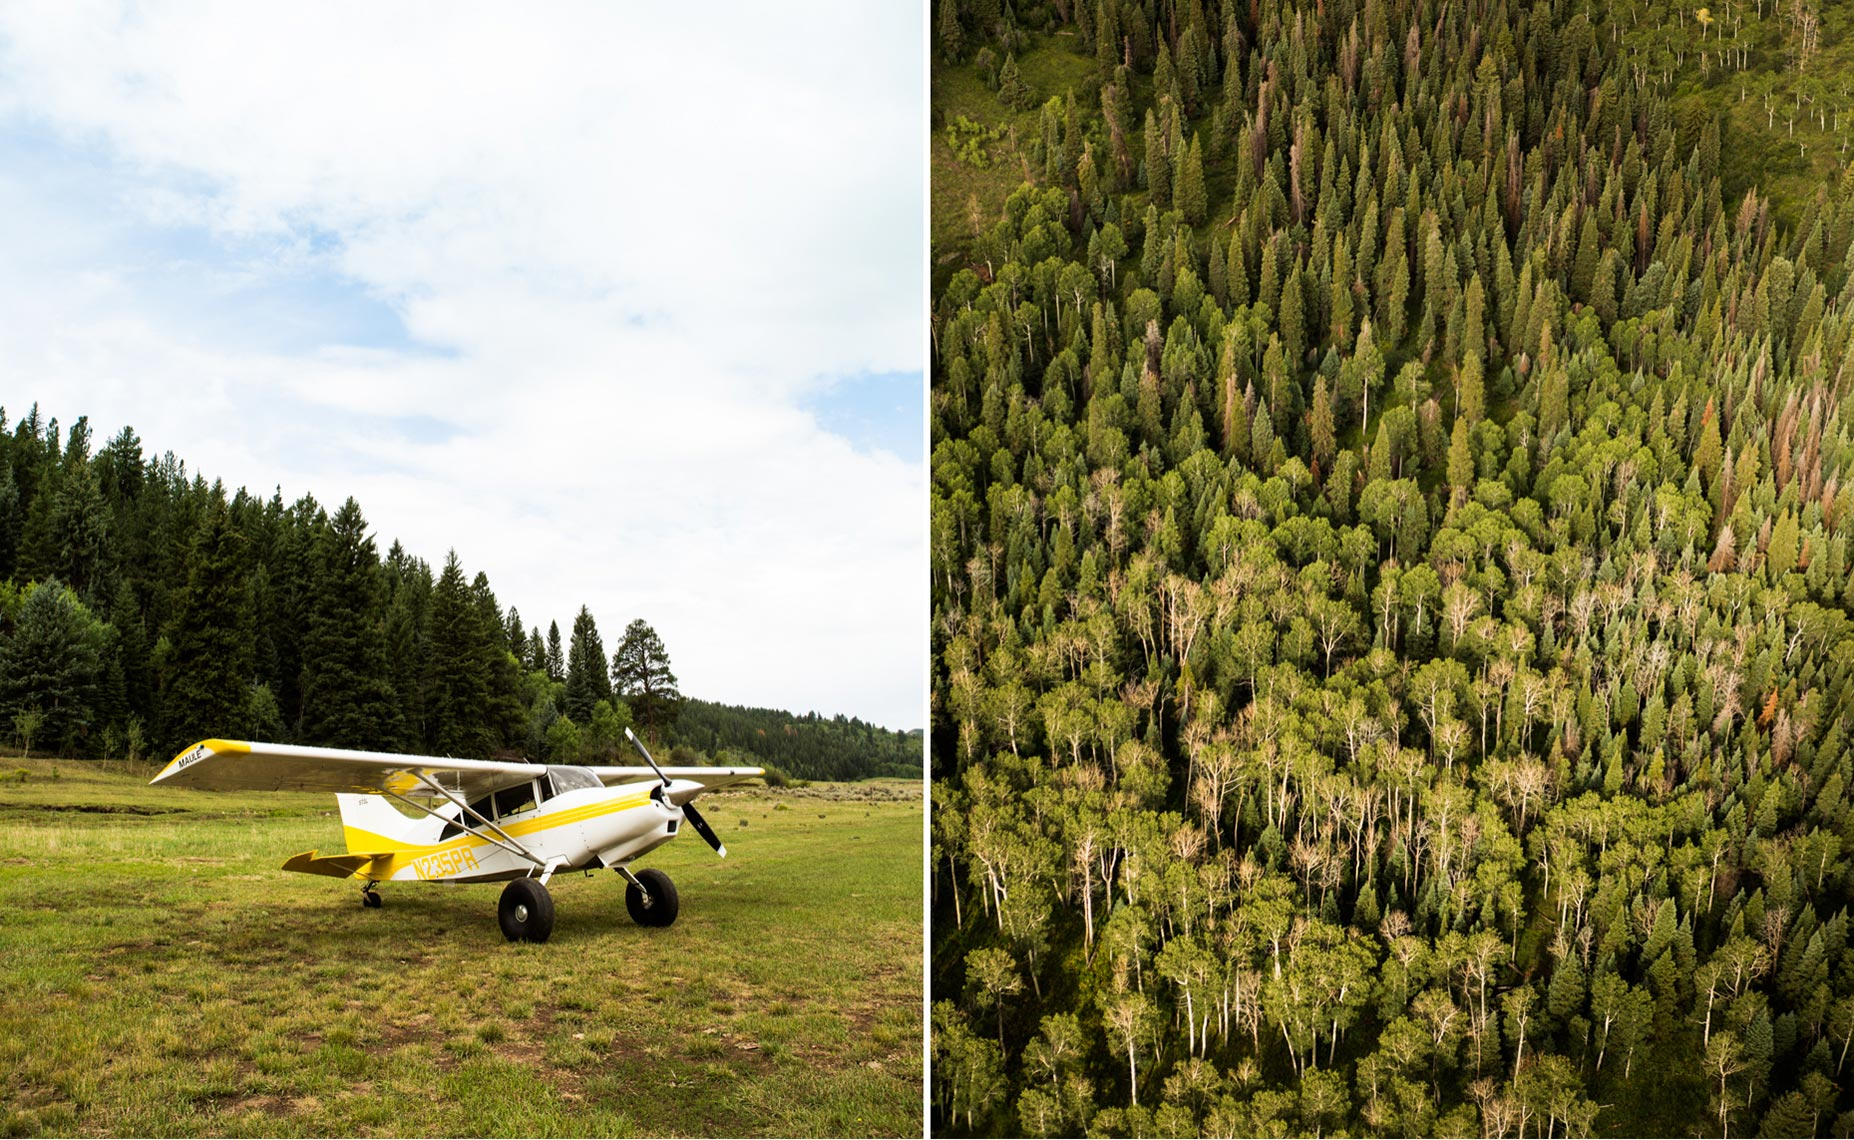 Plane and aerial shot in Colorado.